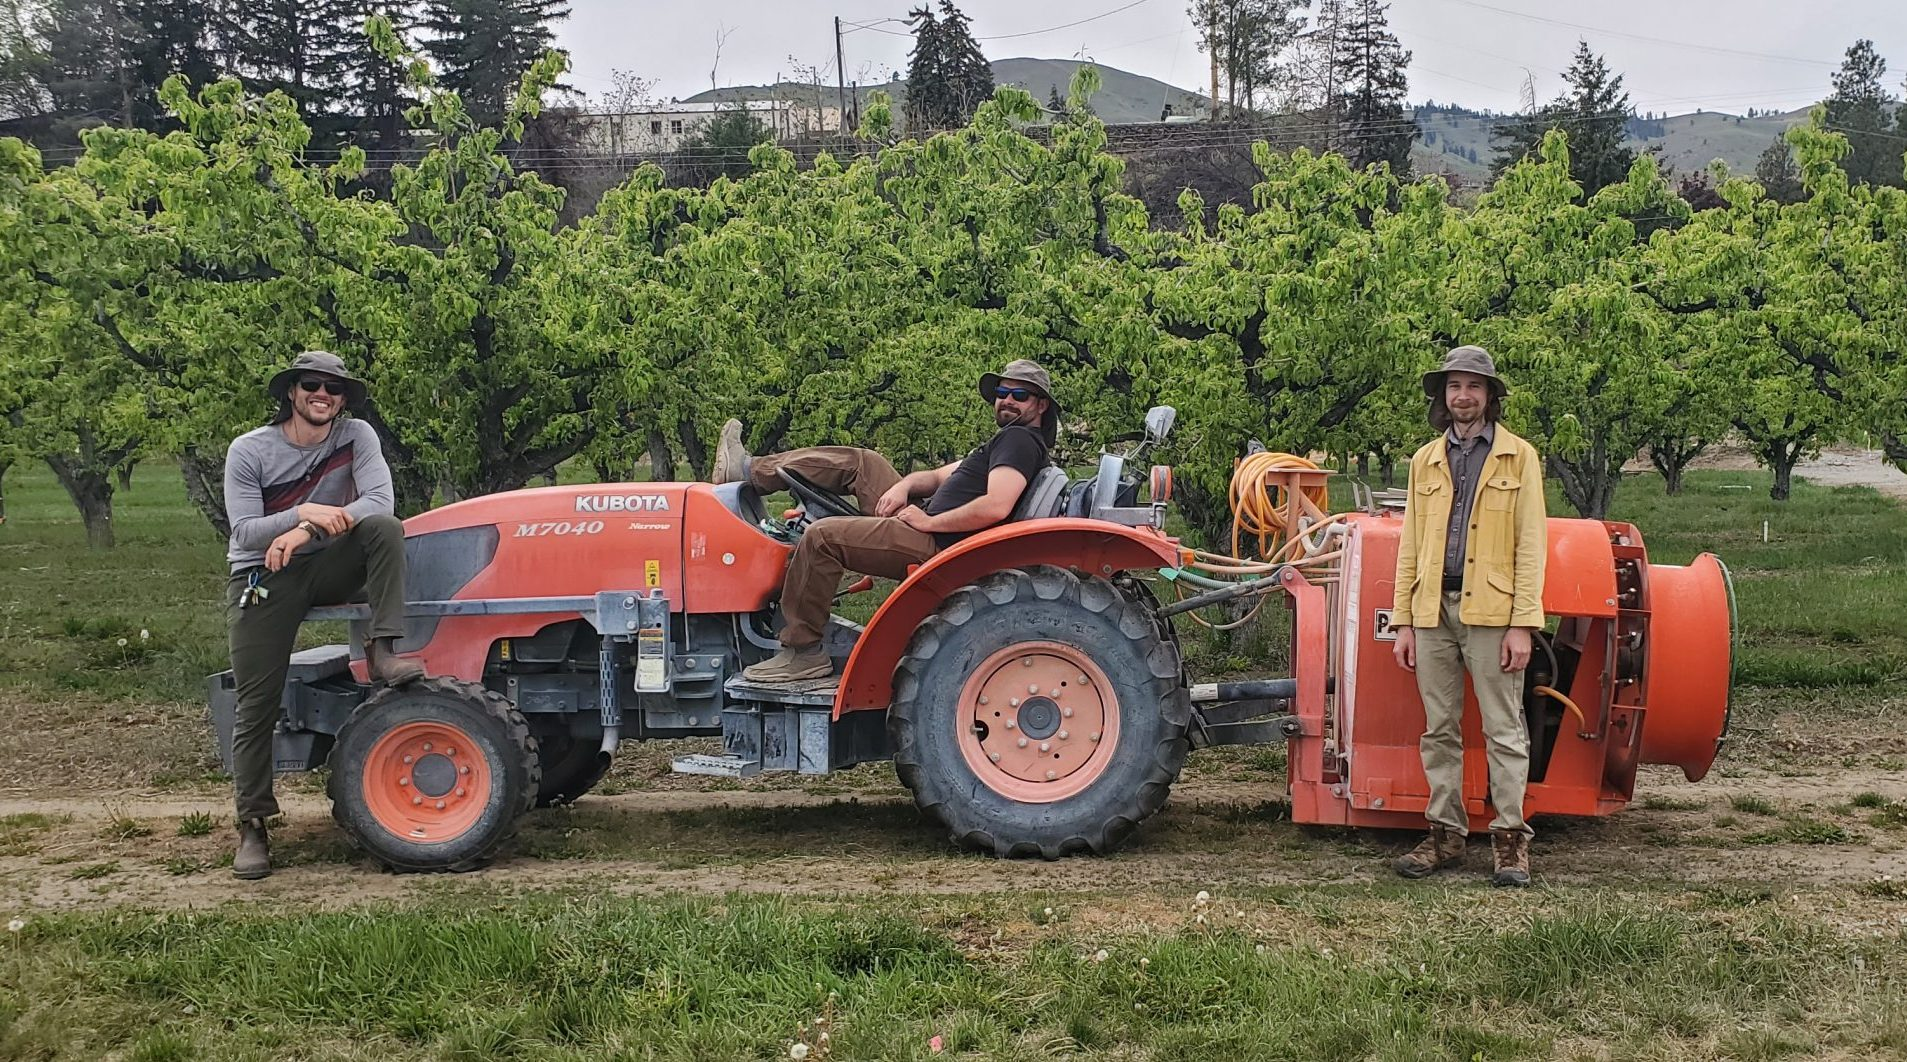 orange tractor with sprayer attachment. three people are posed, one in front, one lounging on the seat and one in front of the sprayer attachment